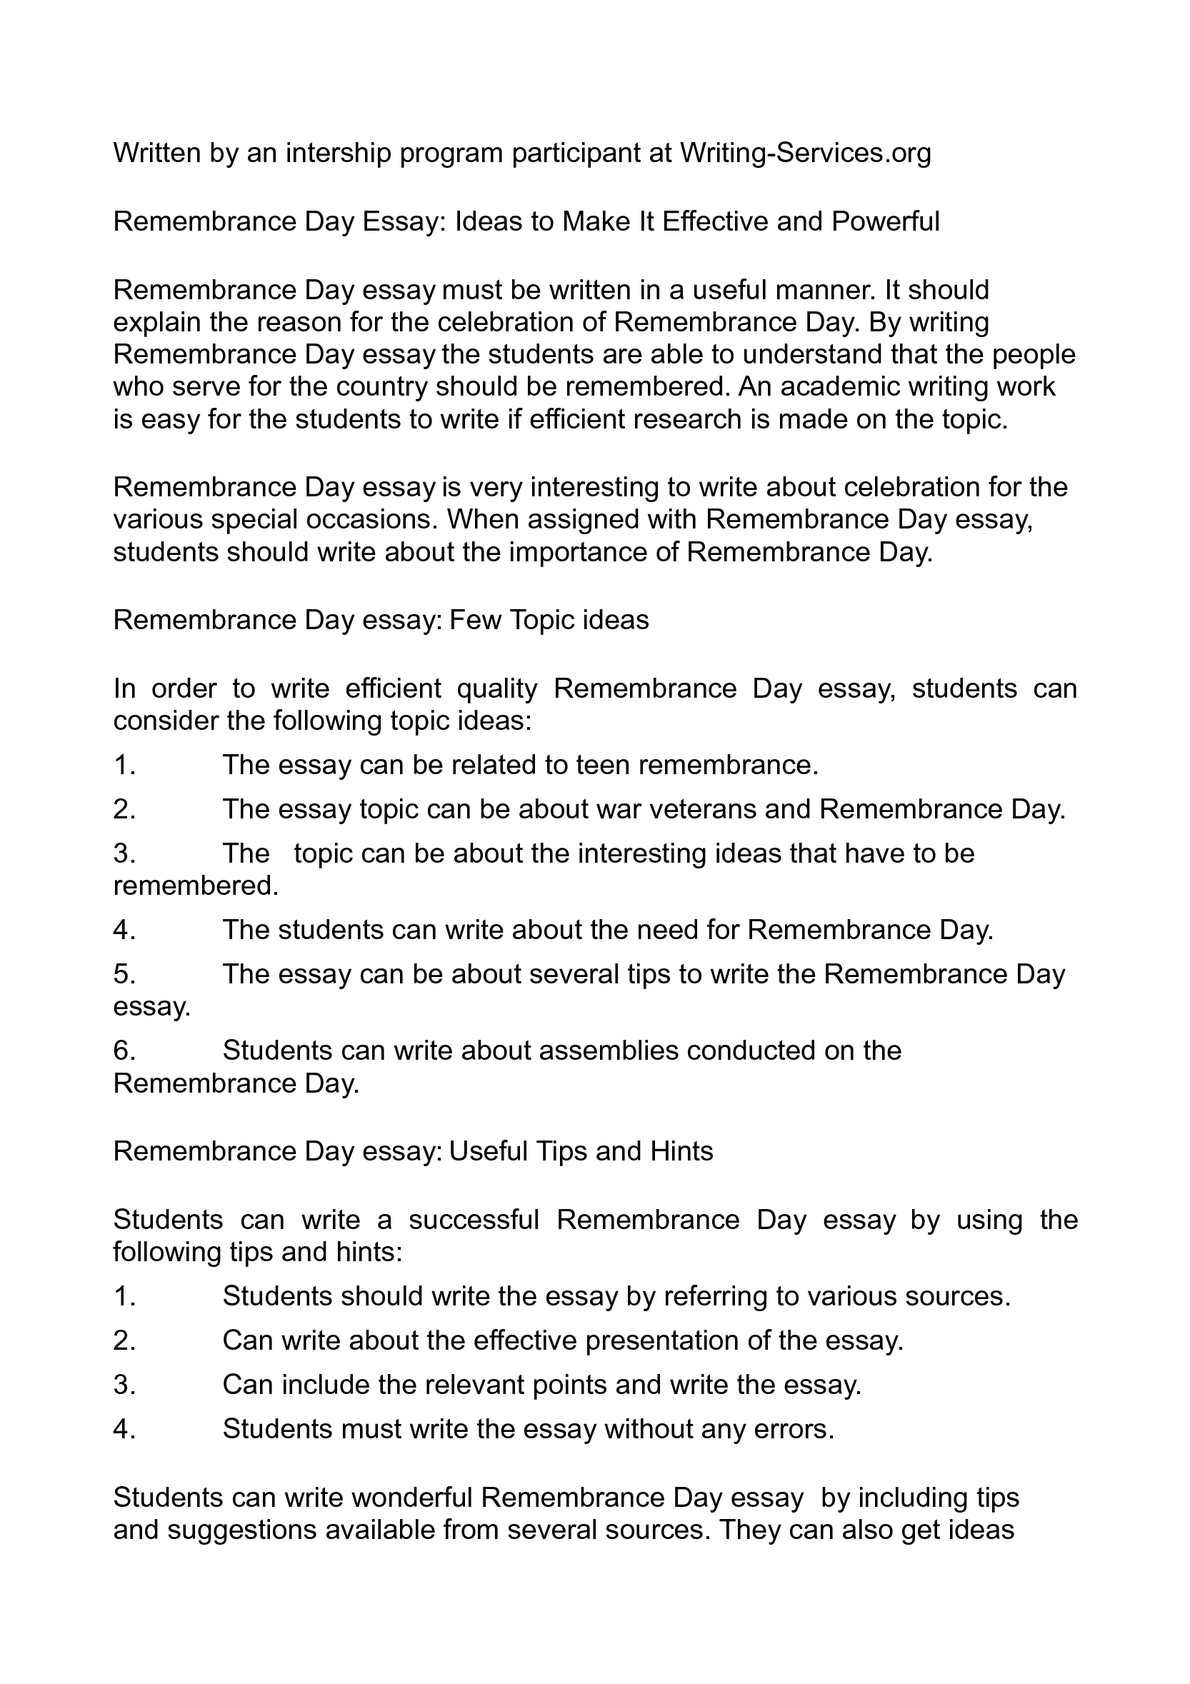 remembrance day essay remembrance day essay final draft bischoff calaméo remembrance day essay ideas to make it effective and calaméo remembrance